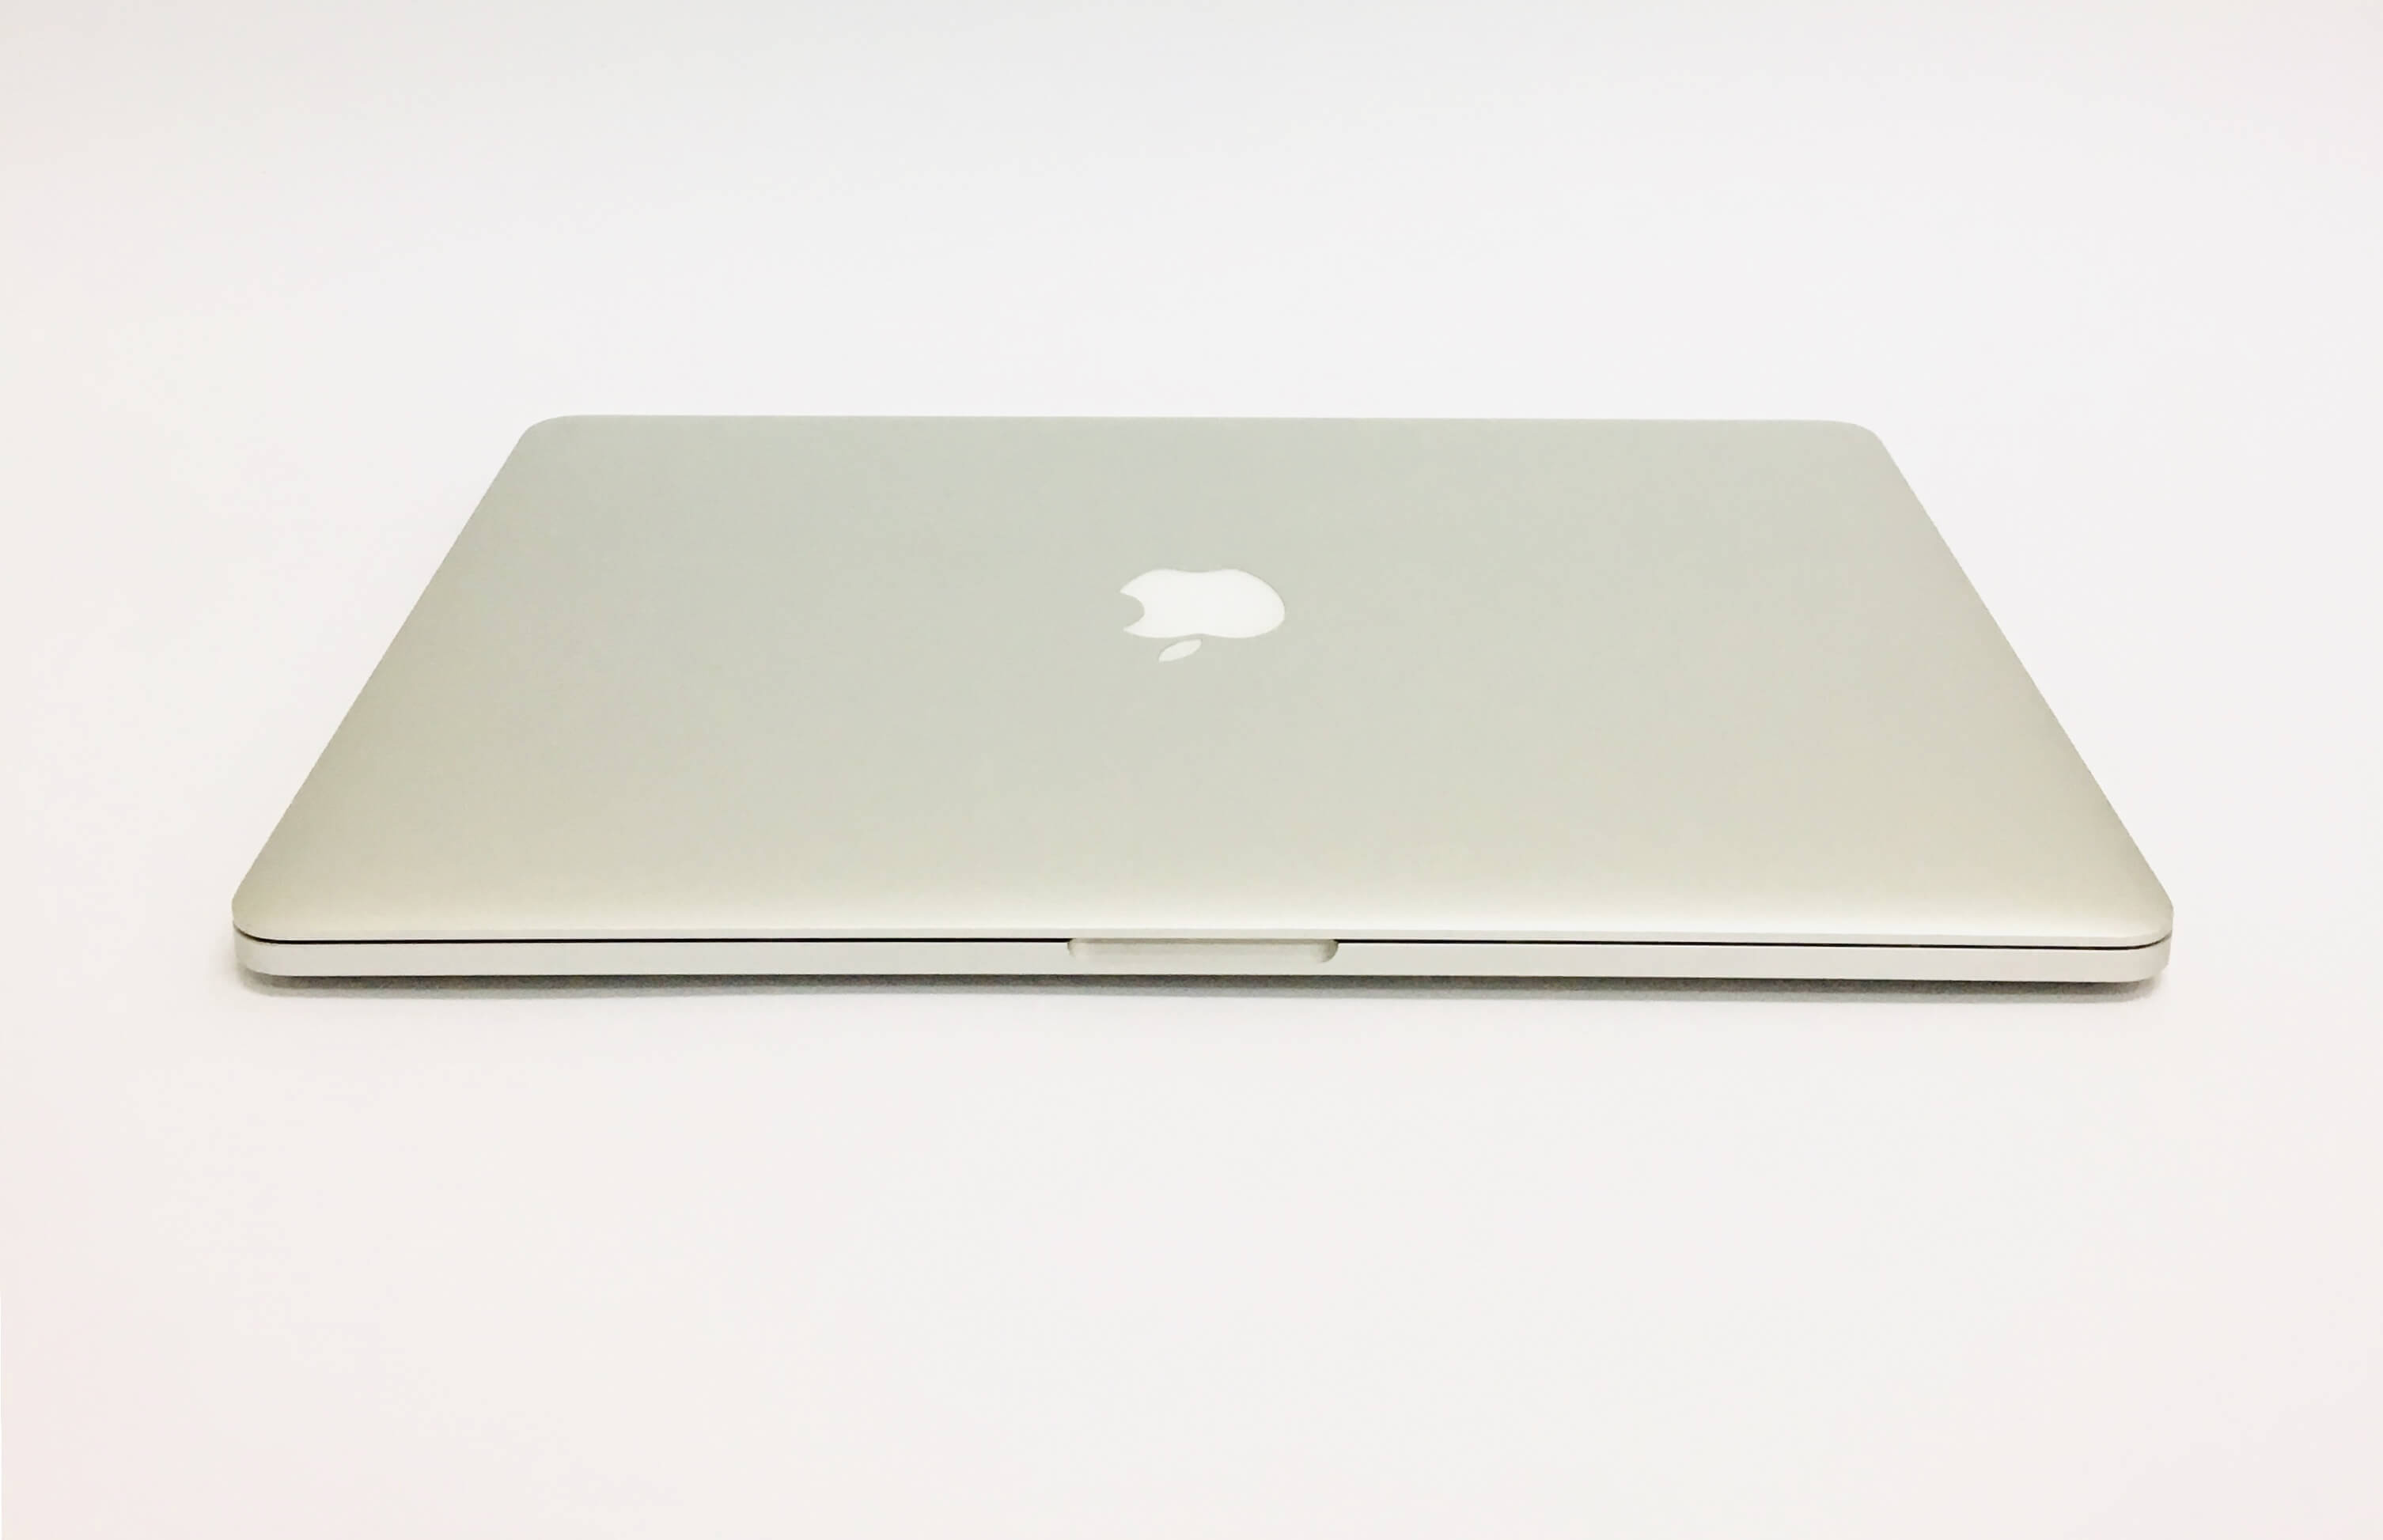 Macbook Pro 15'' Retina, i7, rok 2015, 16GB RAM, 512GB SSD